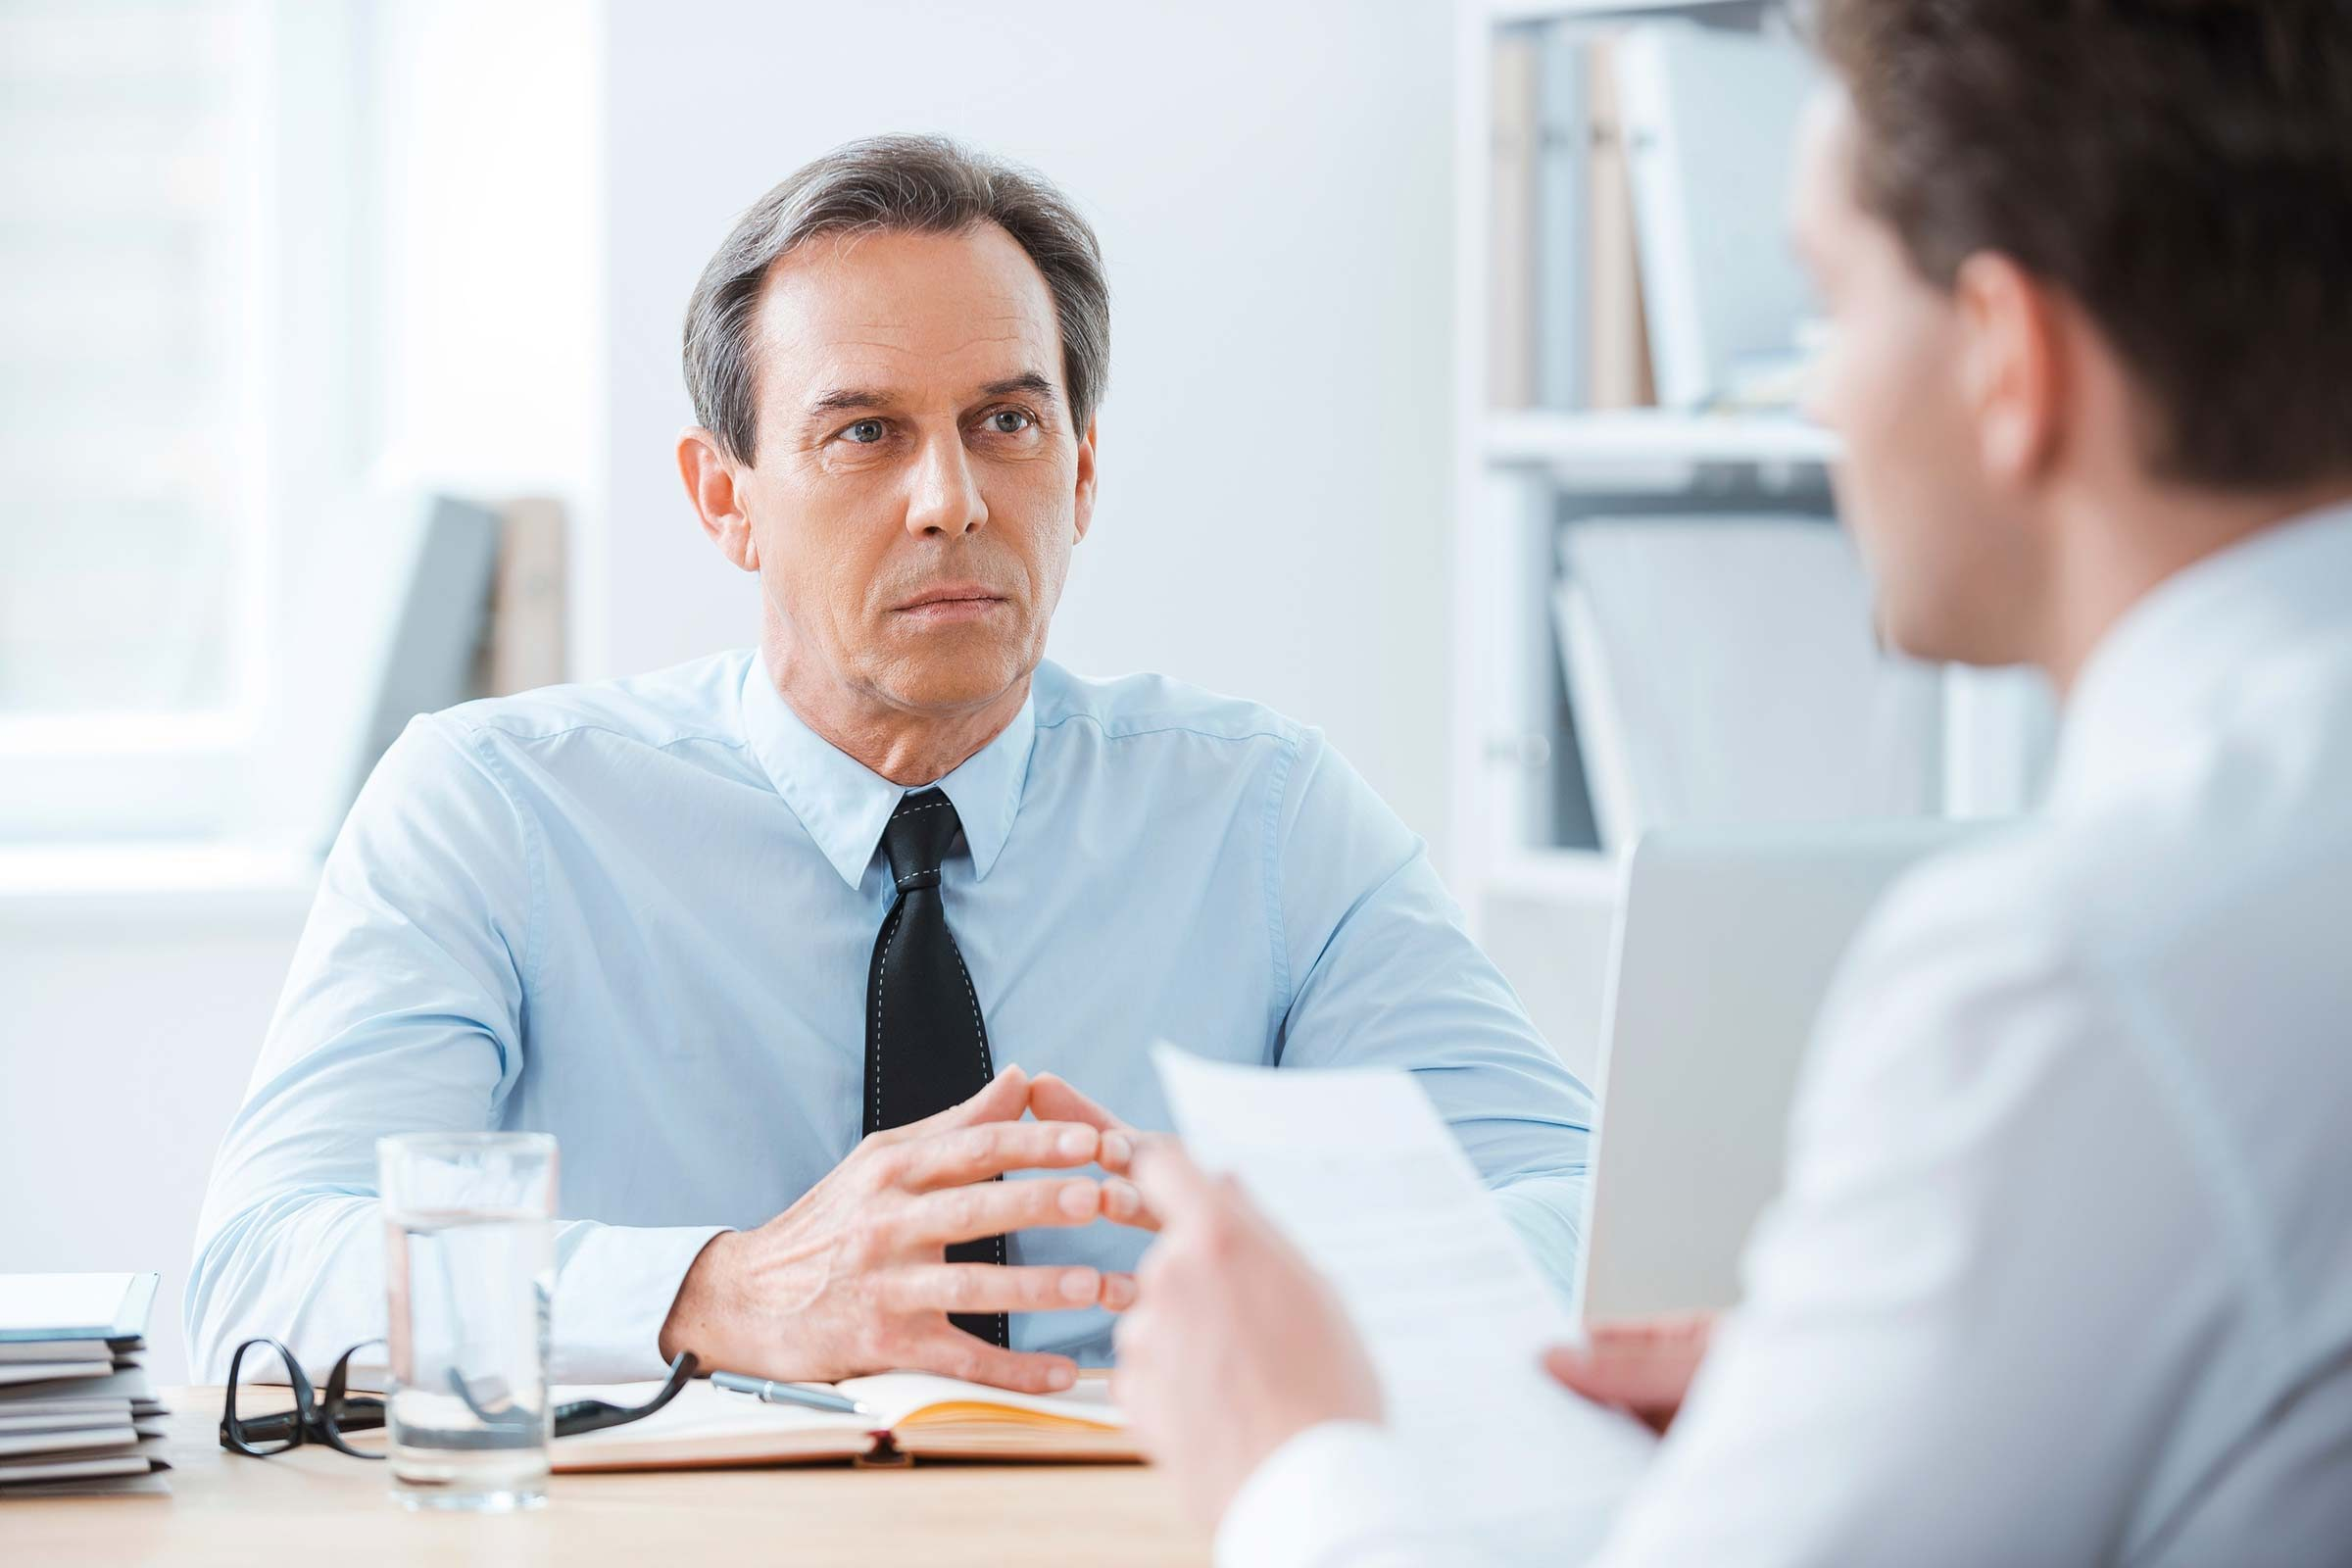 03-im-things-you-should-never-say-to-boss